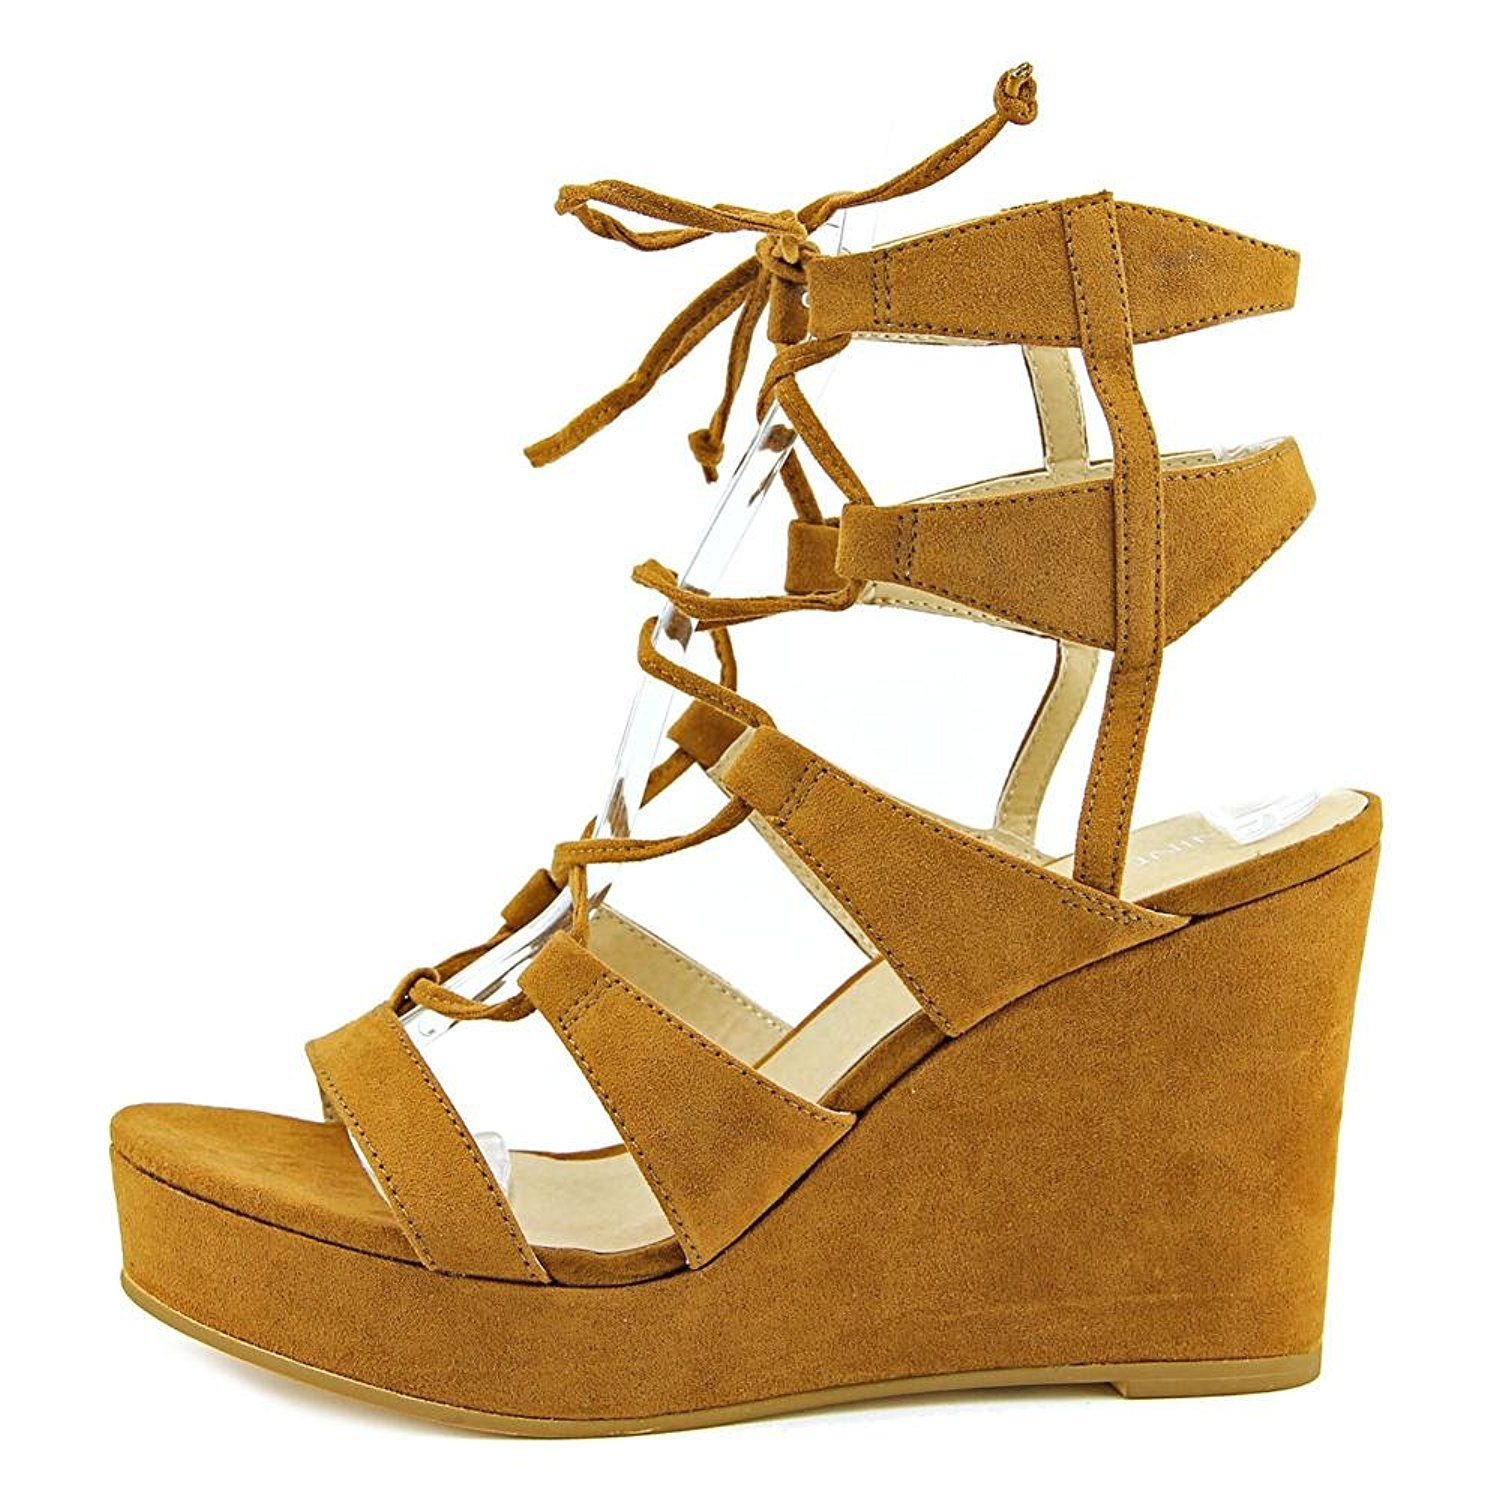 28e79d3296a3 Nine West Womens Kaliope50 Open Toe Casual Platform Sandals 1 of 5Only 5  available ...